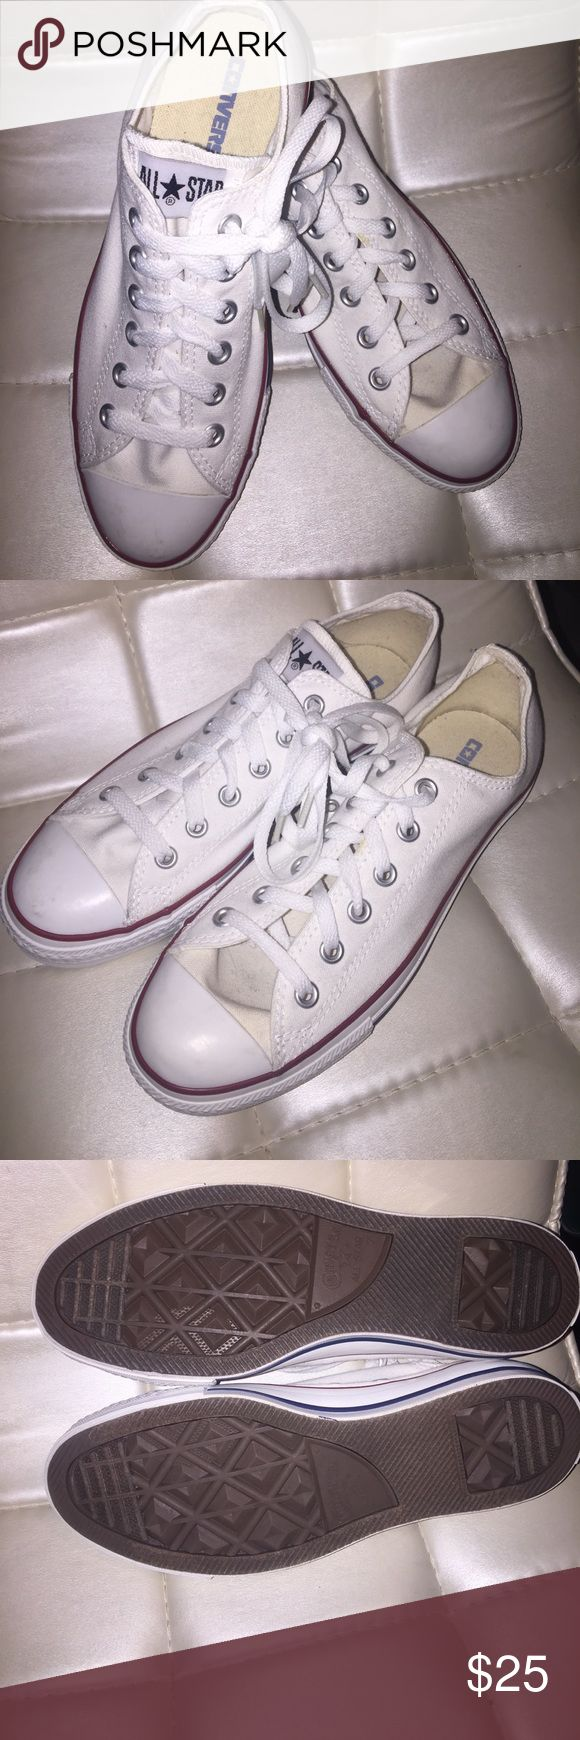 Crisps white Converse All Star Classics All Stat Convers Men's 7 or Lady's 9. White and clean hardly used Converse Shoes Sneakers